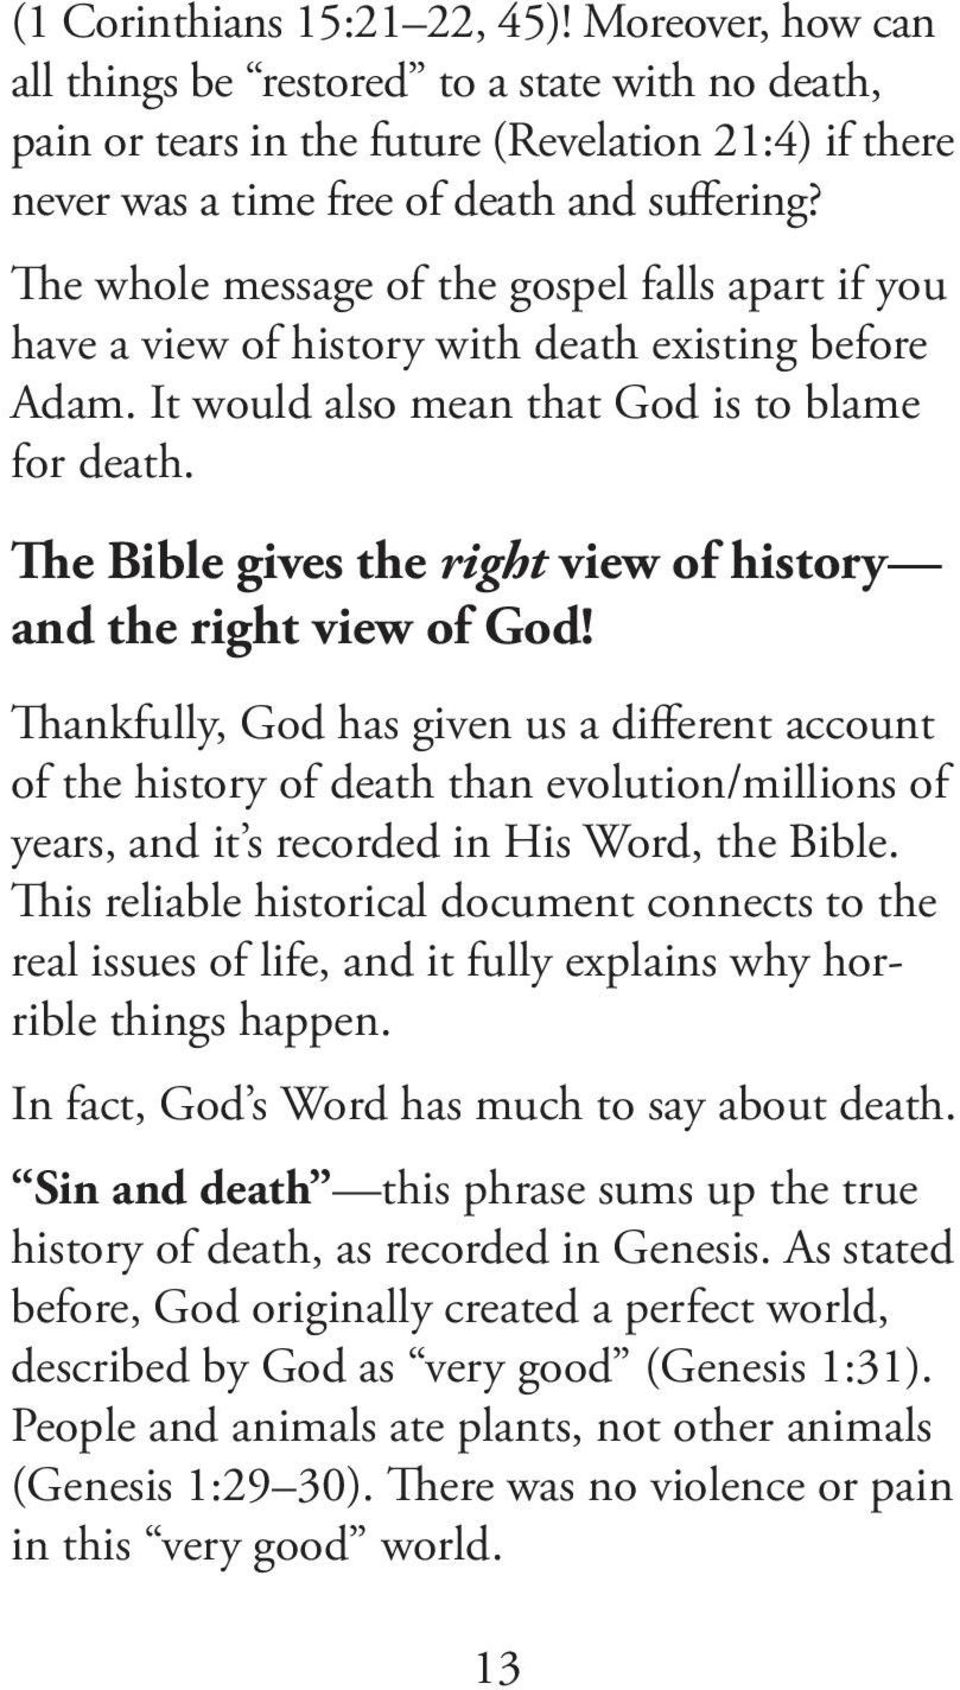 The Bible gives the right view of history and the right view of God!